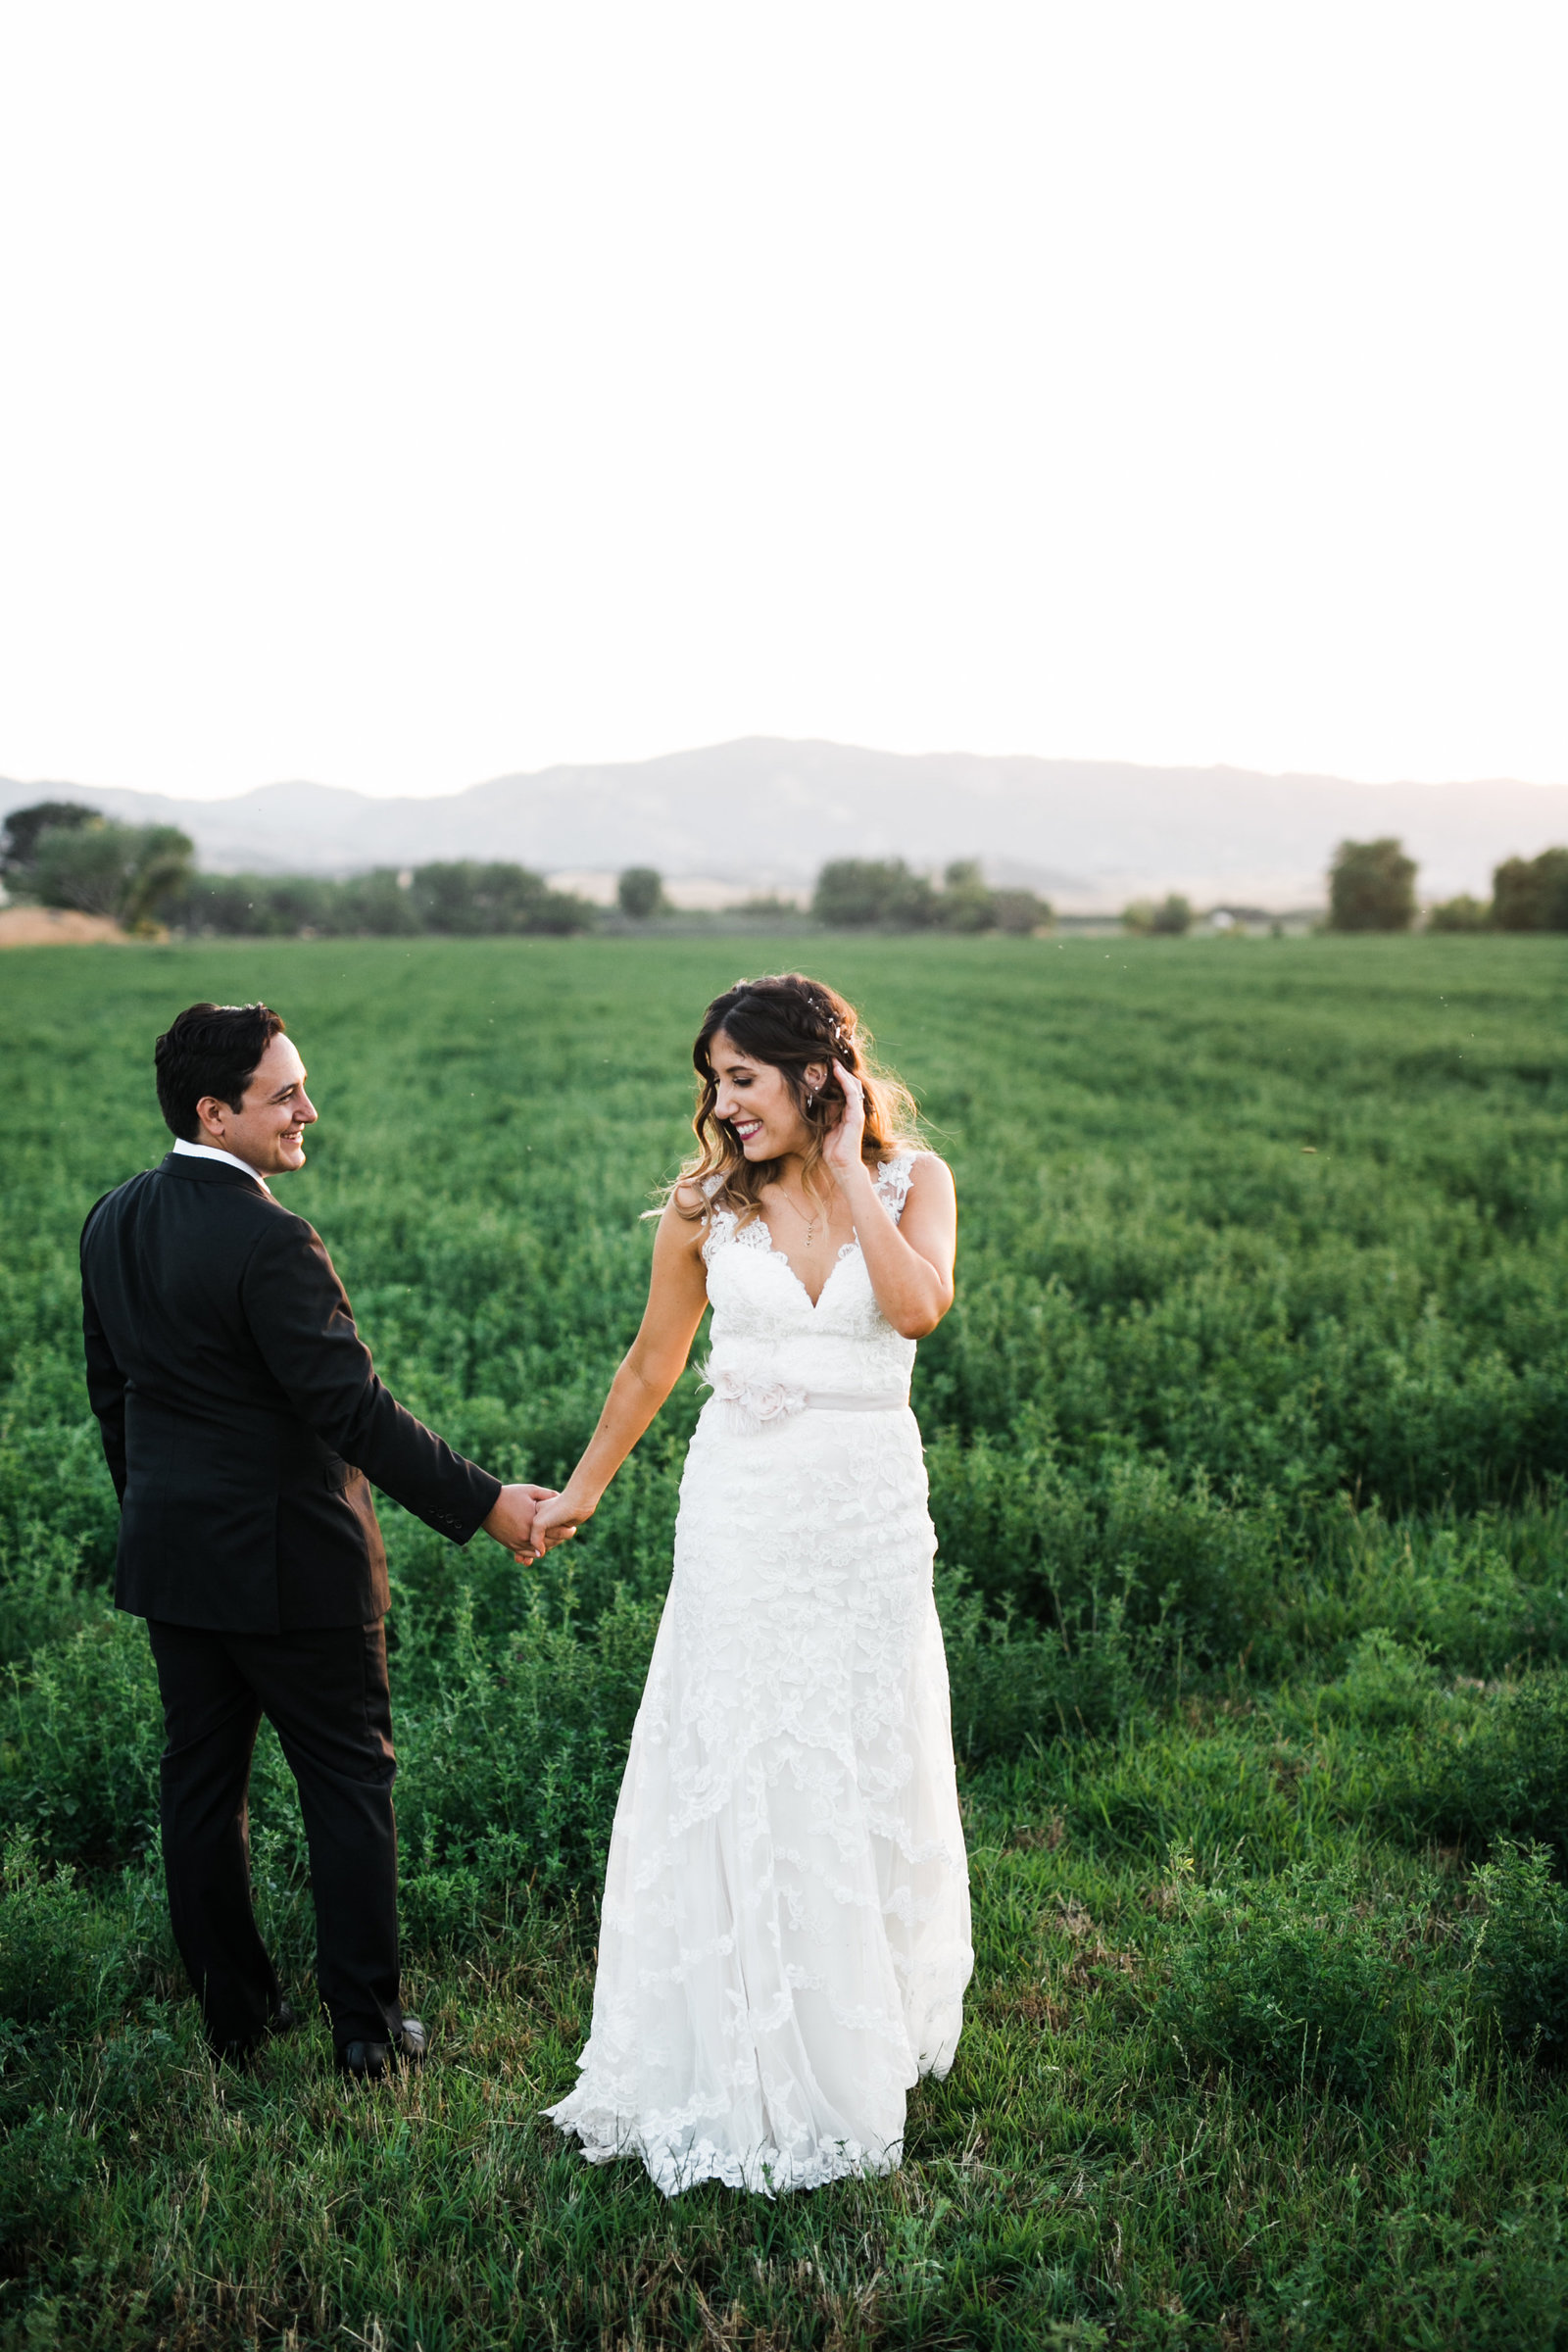 Ryan Greenleaf_Northern California Wedding Photographer_102Website_2017_Wedding75